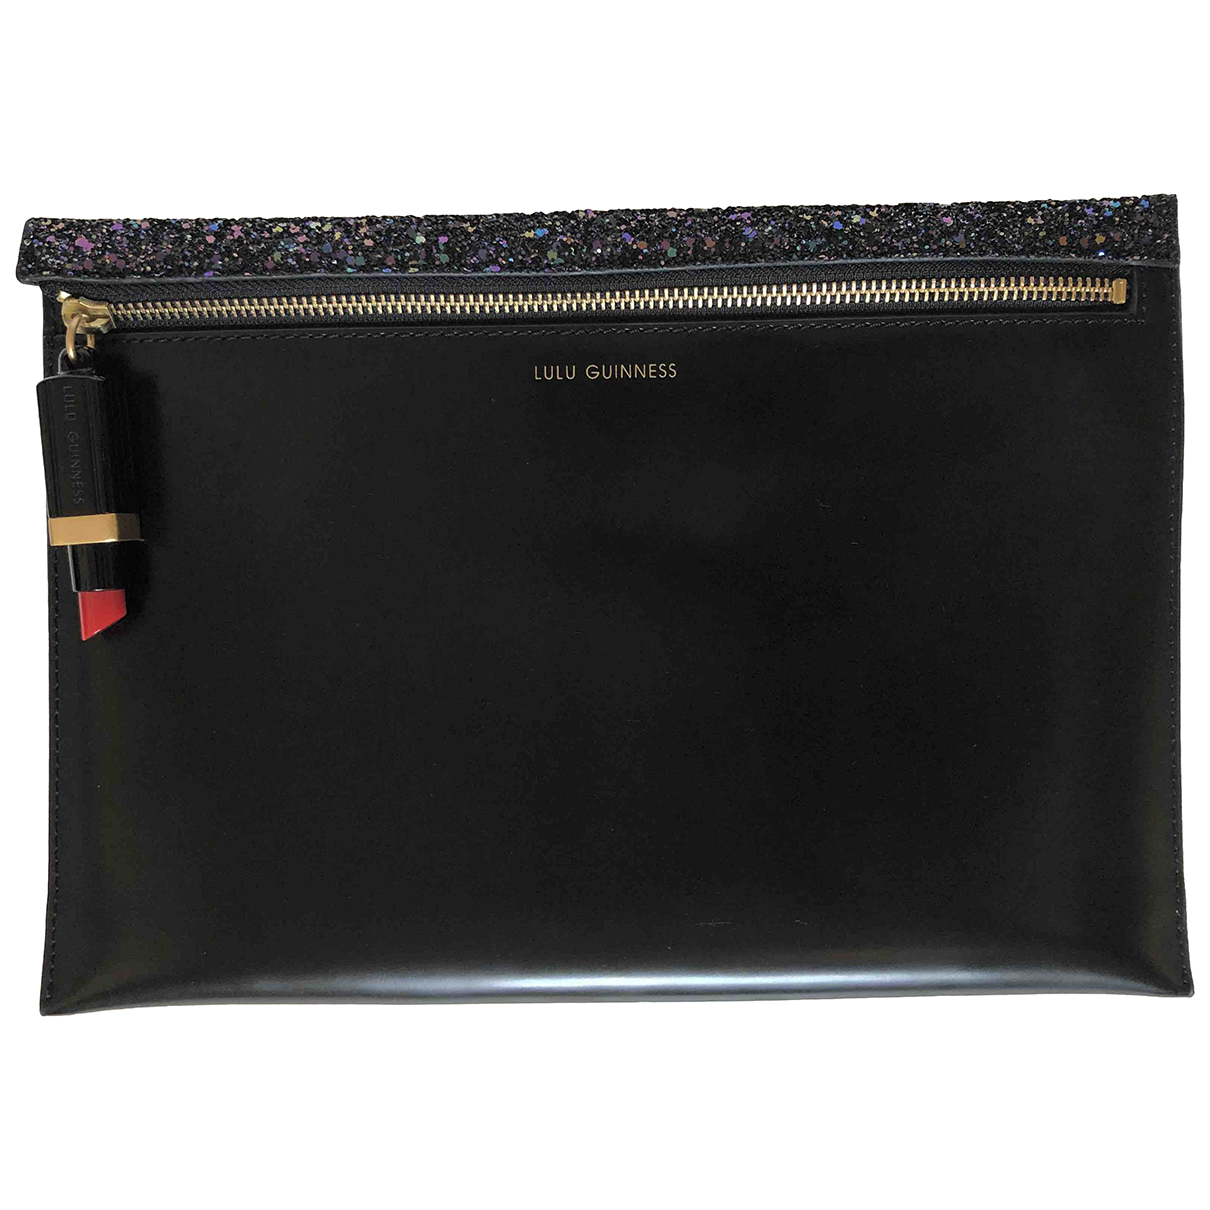 Lulu Guinness \N Clutch in  Schwarz Leder